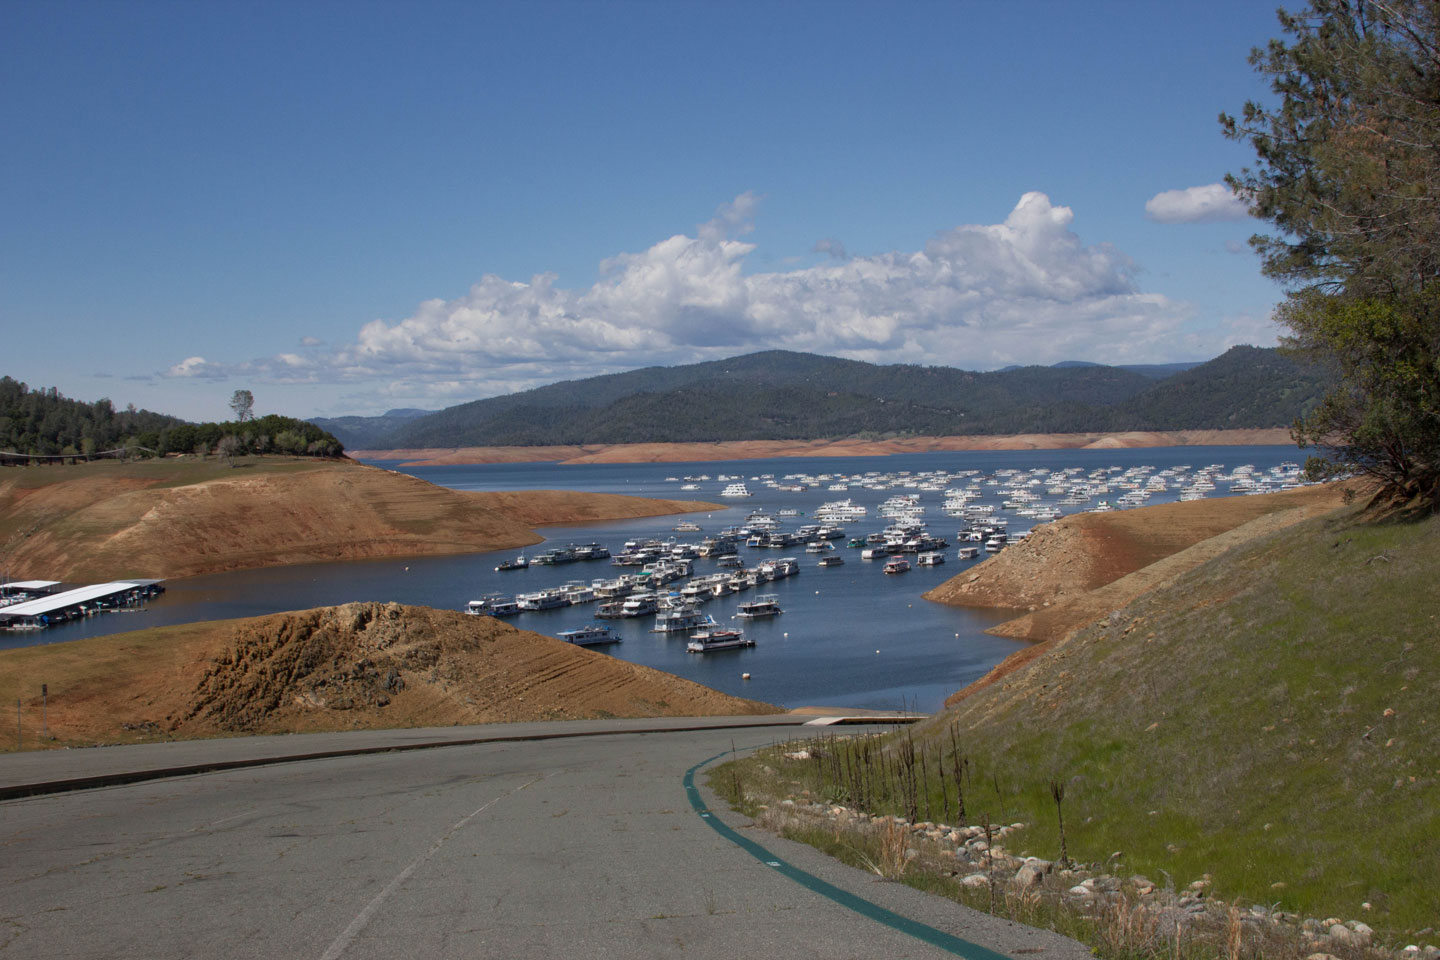 Drought Photos: See Lake Oroville Fall Near Historic Low